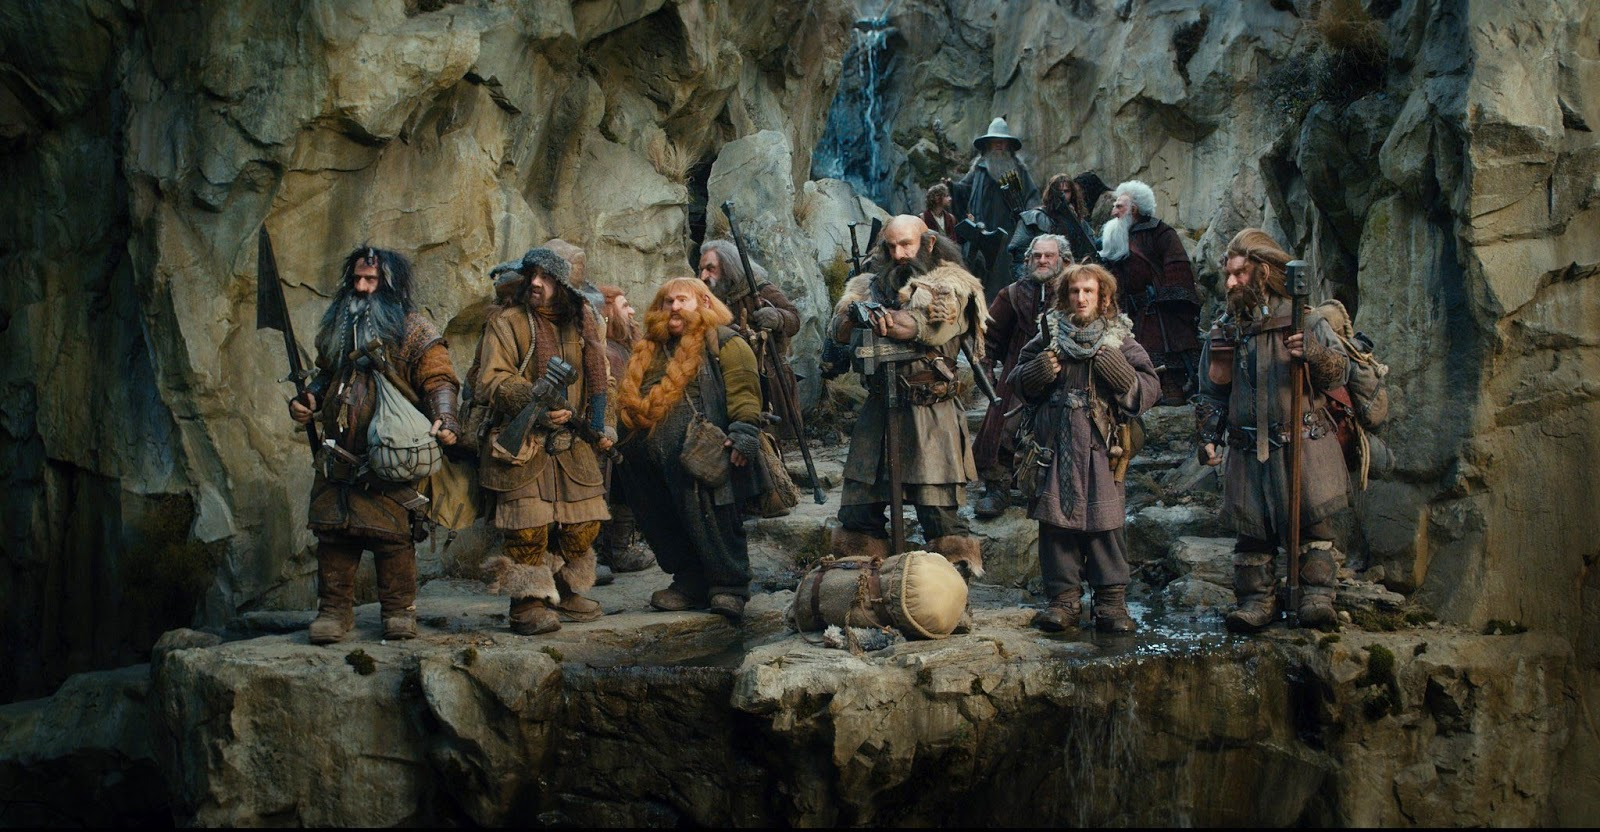 The Hobbit An Unexpected Journey hd wallpapersImage to Wallpaper 1600x832